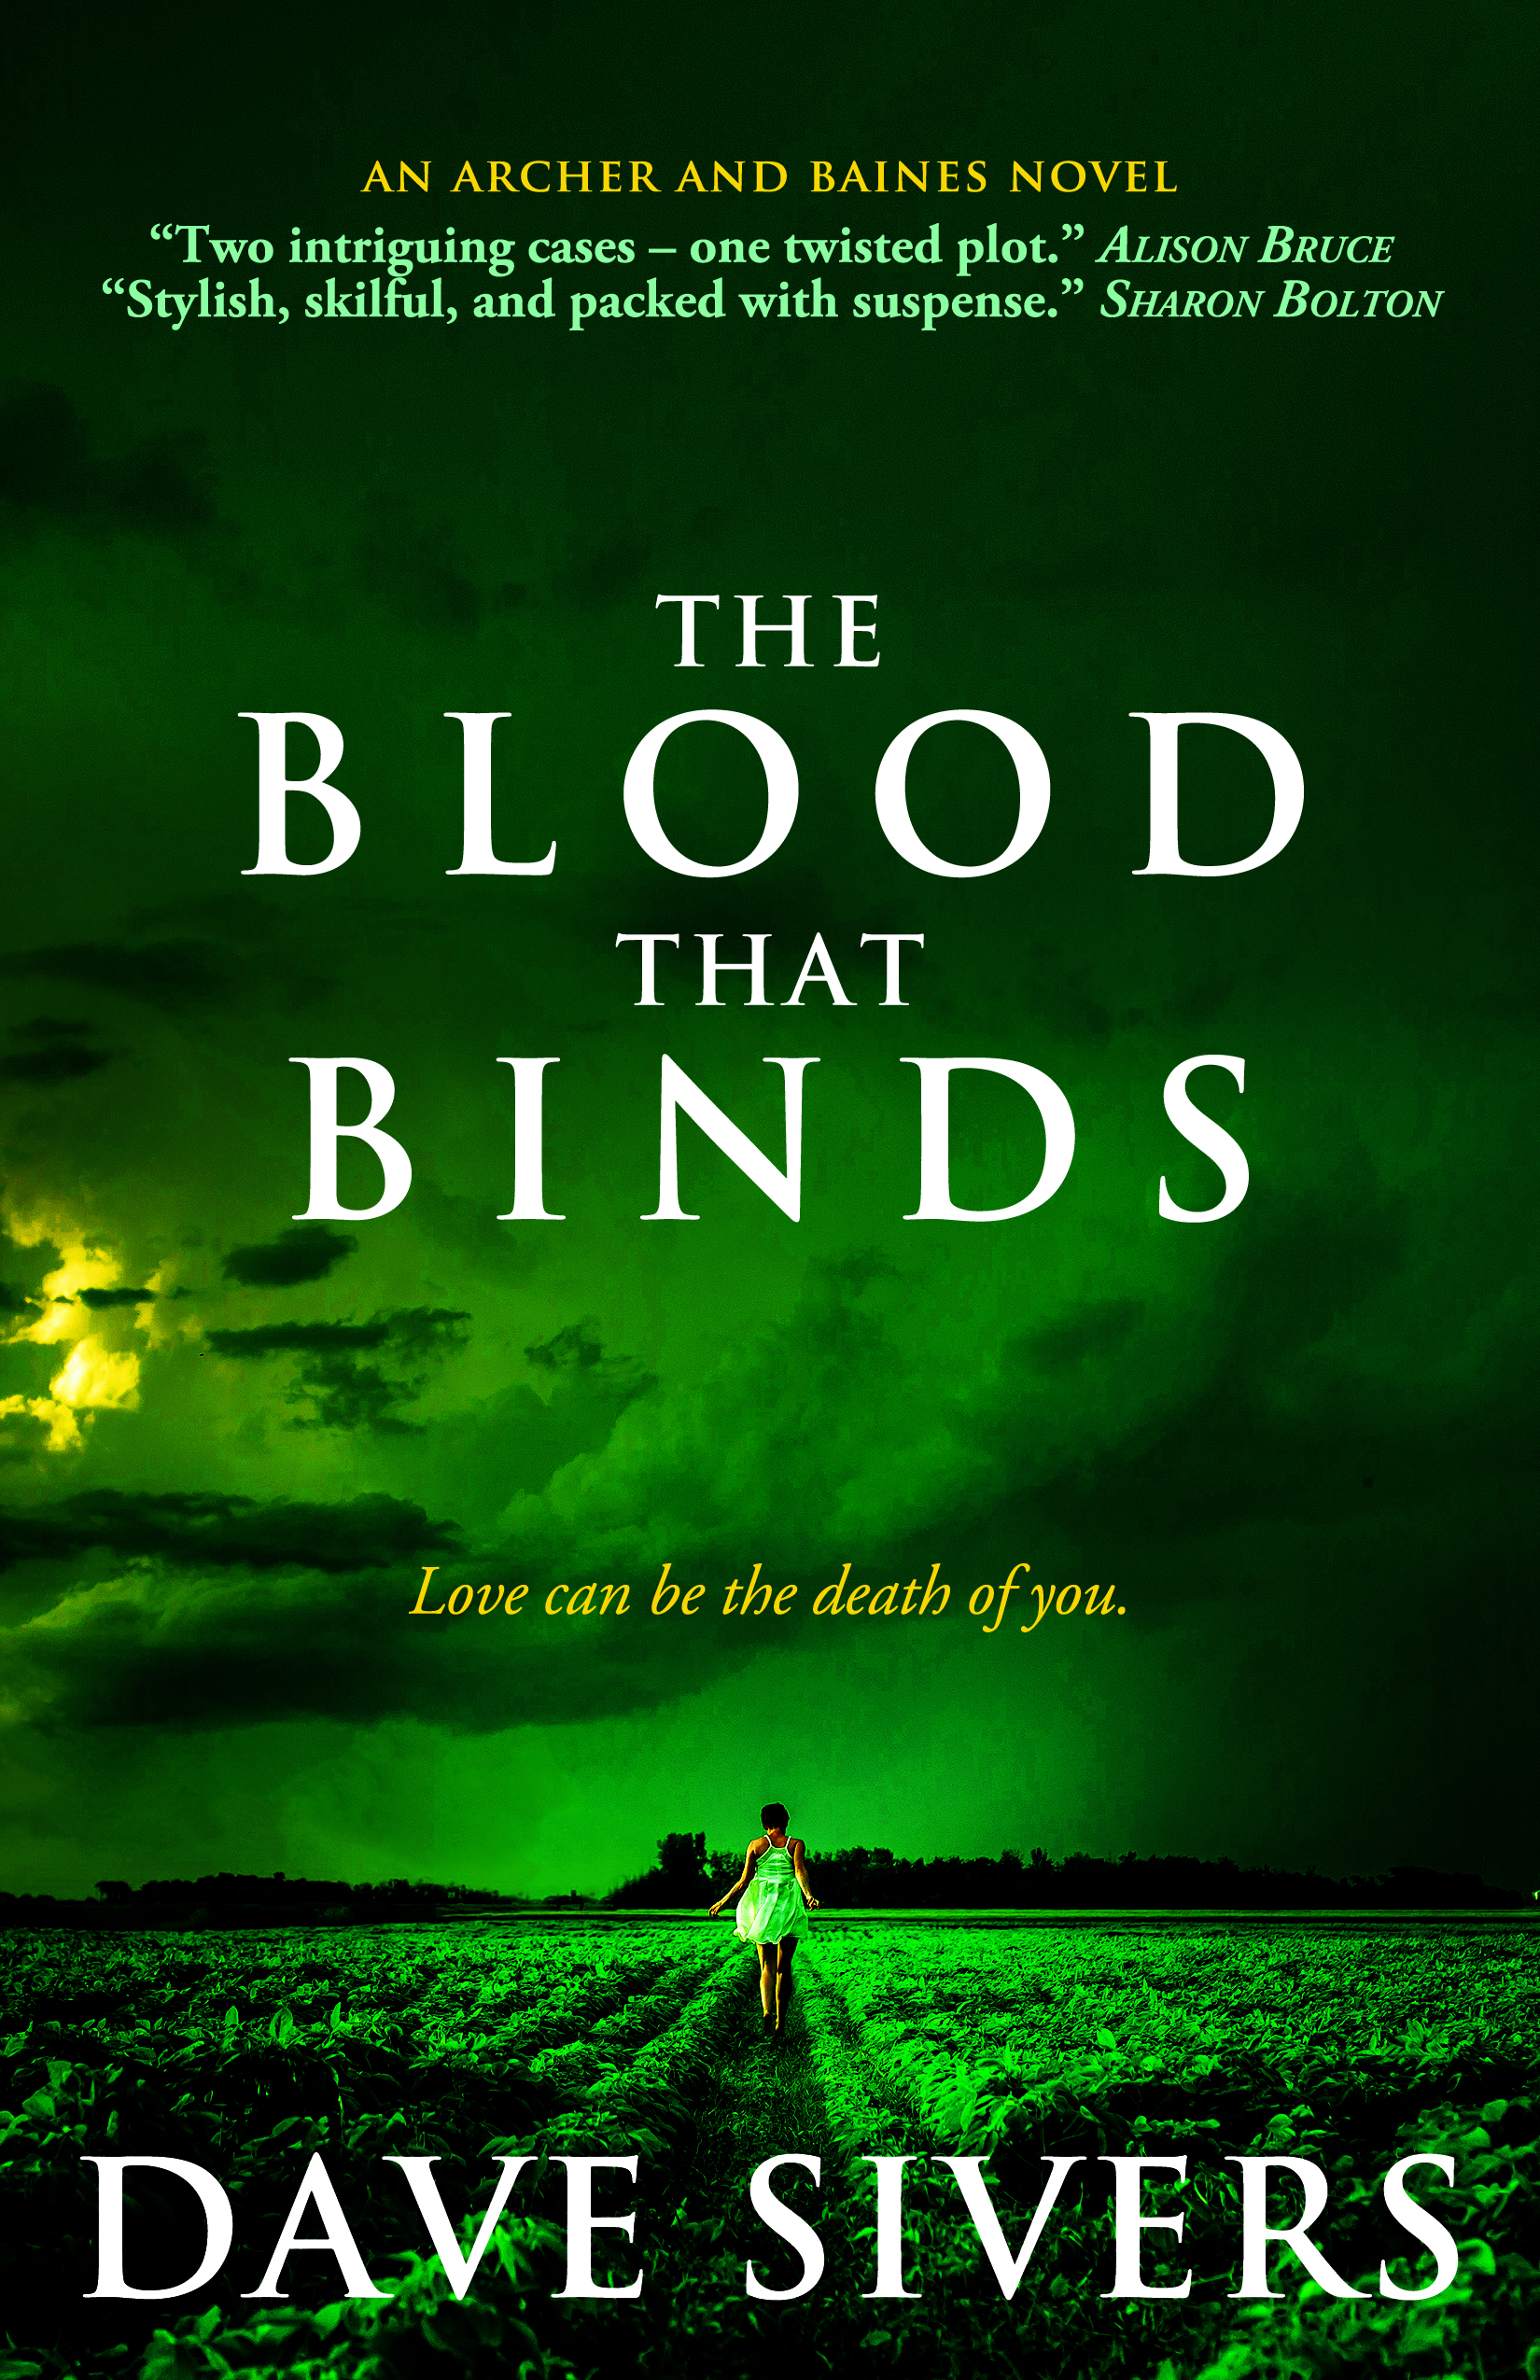 Dave sivers writer blog my seventh book and the fourth in the archer and baines series the blood that binds launches in ebook form on 4 april 2017 and its always an exciting fandeluxe Gallery